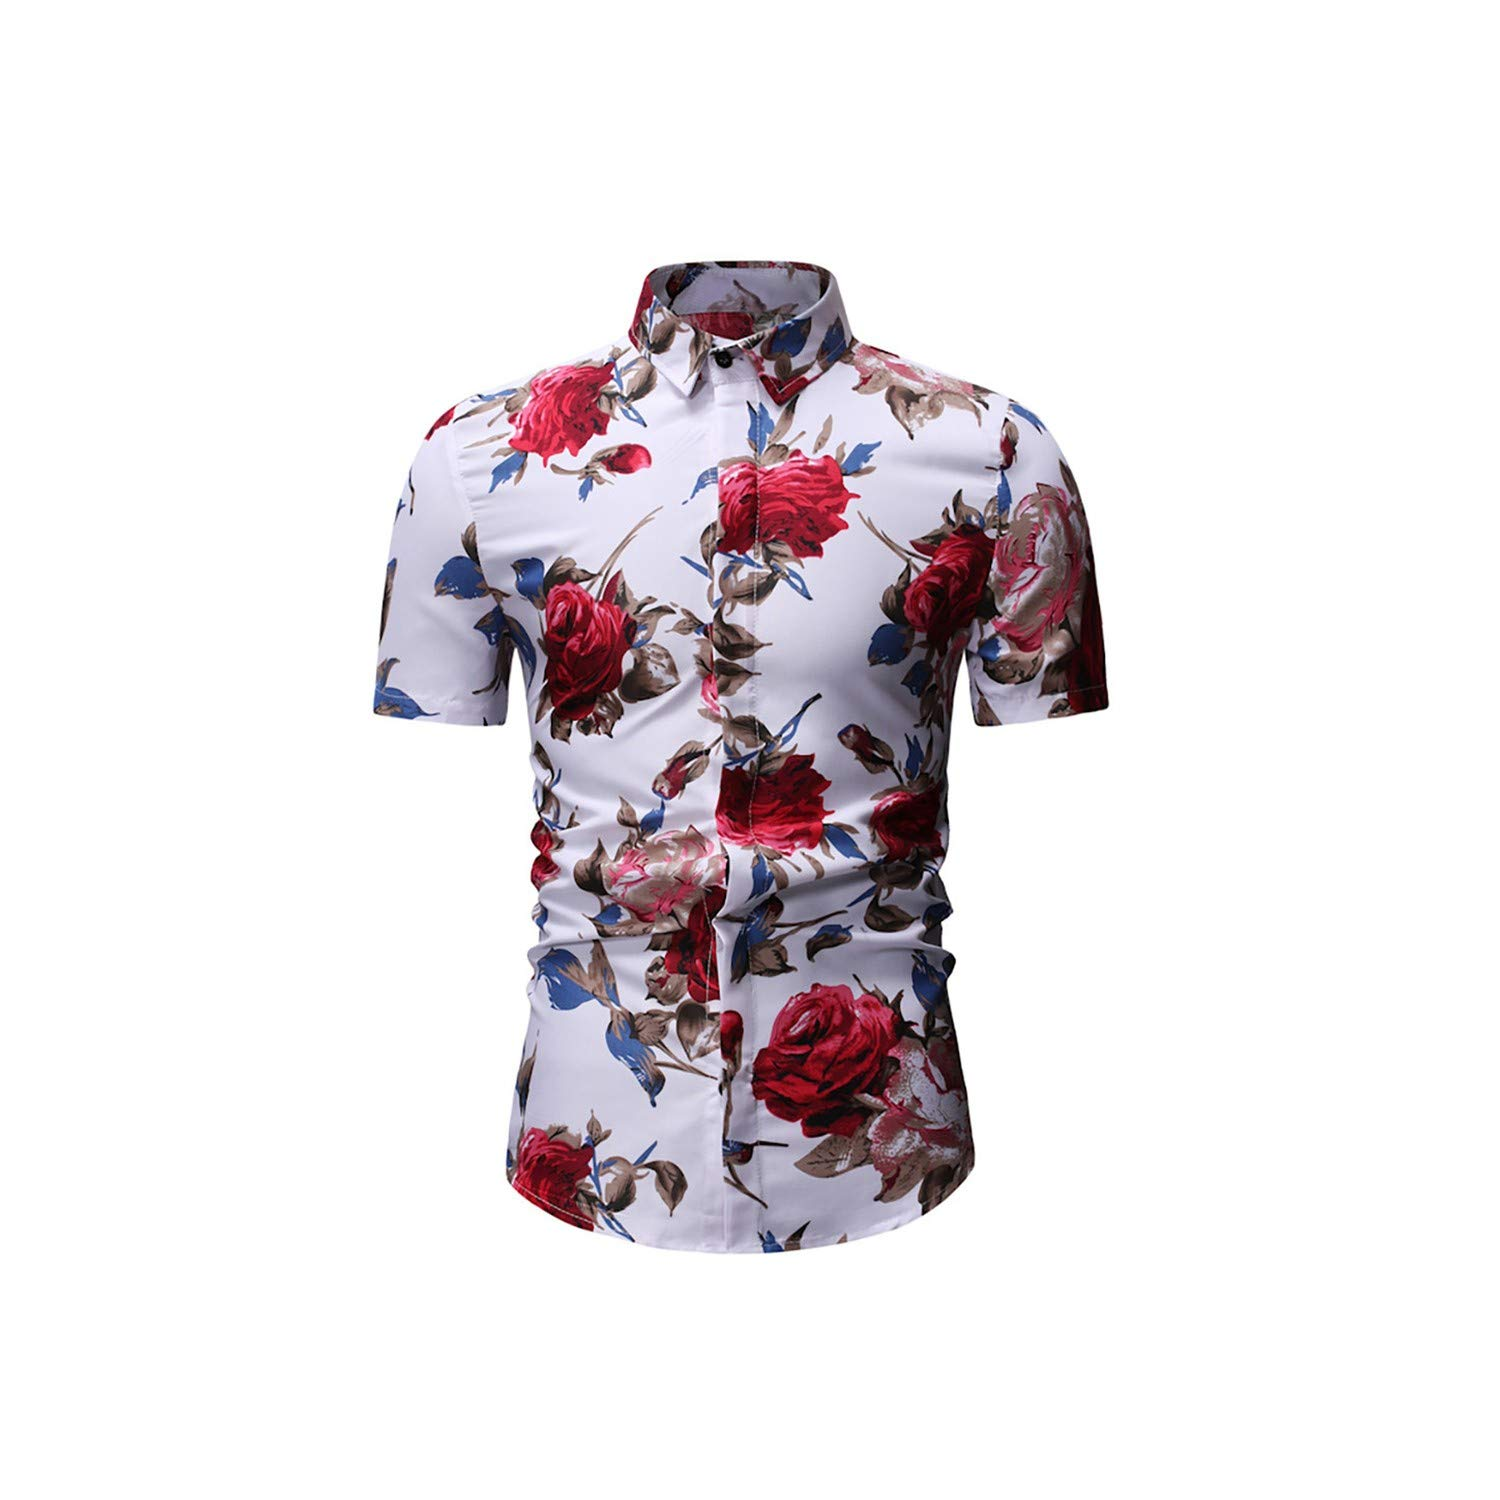 Floral Shirt Men Casual Summer Printed Button Short Sleeve Slim Fit Top Blouse Male Clothing